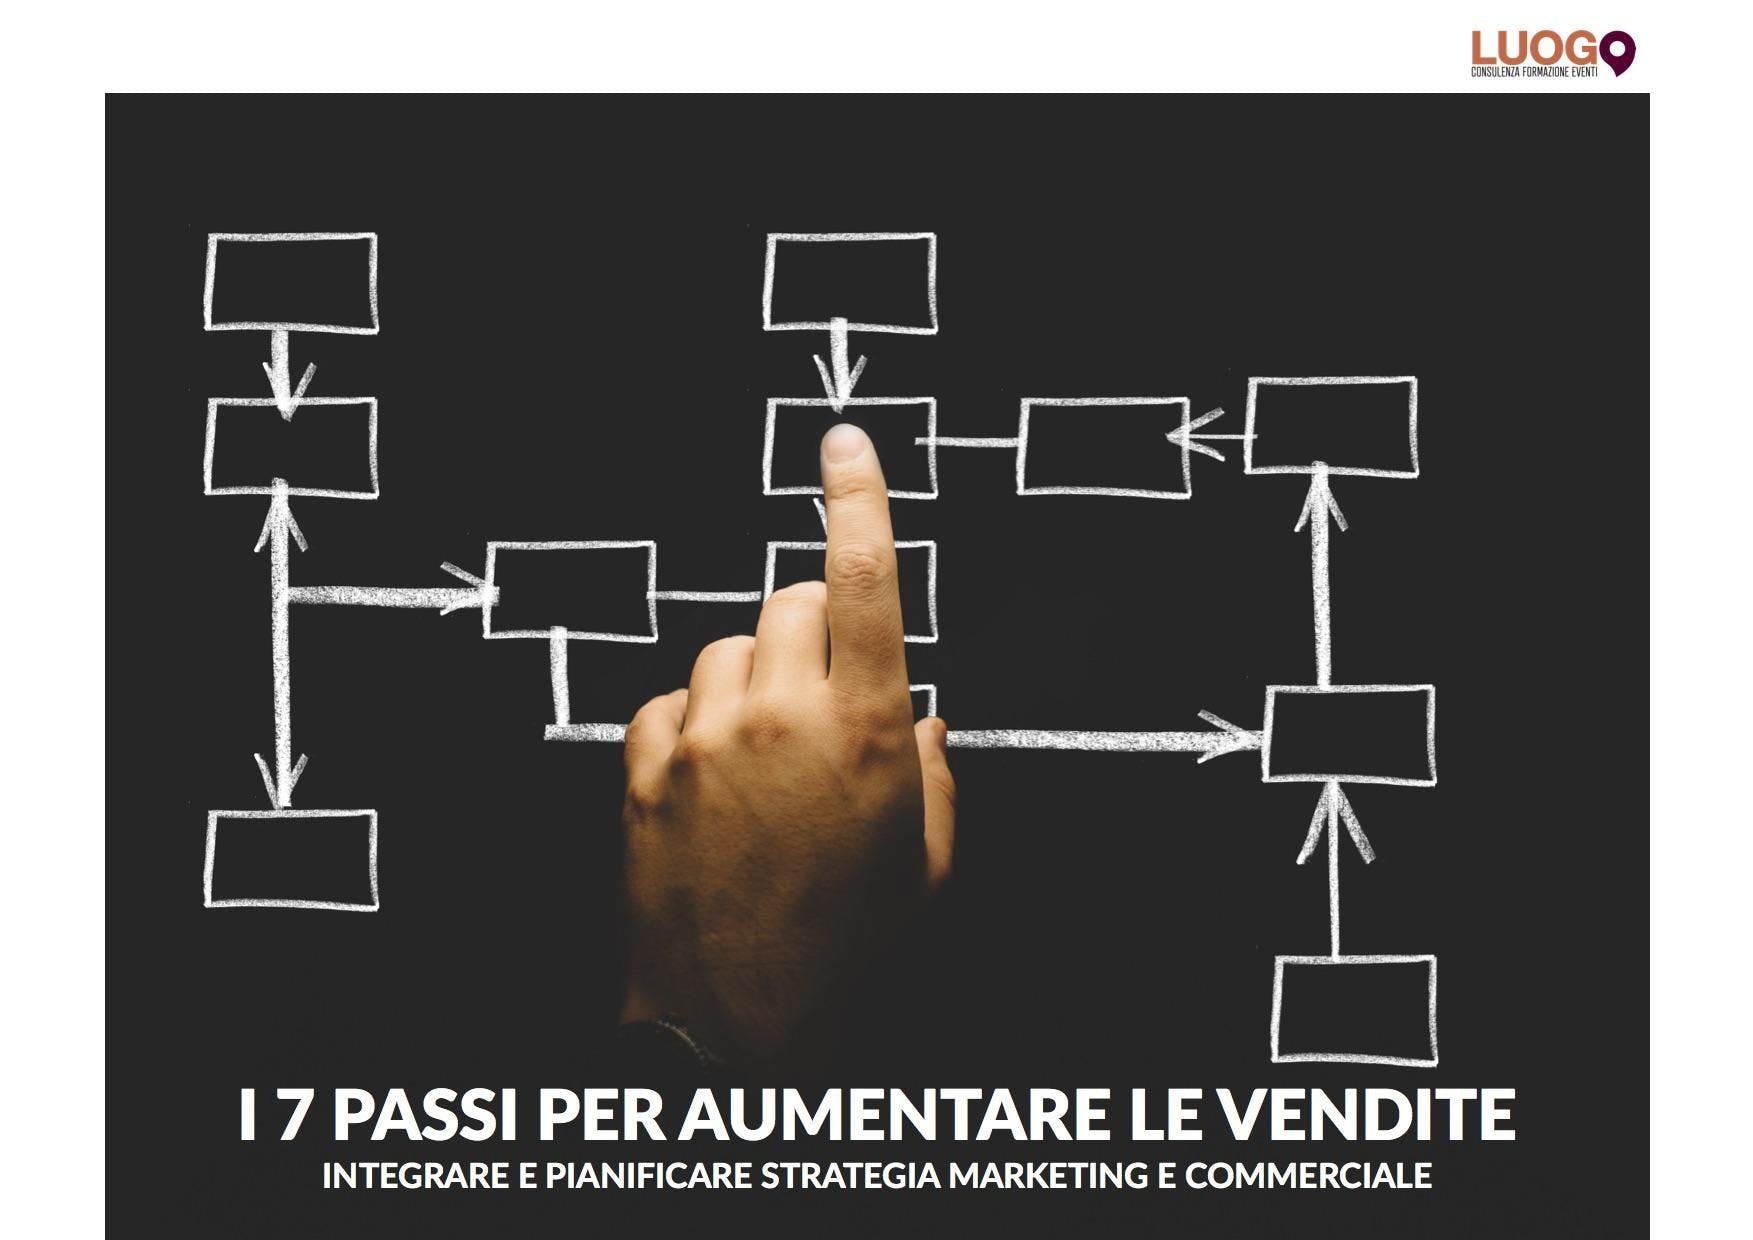 I 7 Passi per Aumentare le Vendite - Integrare e pianificare strategia marketing e commerciale